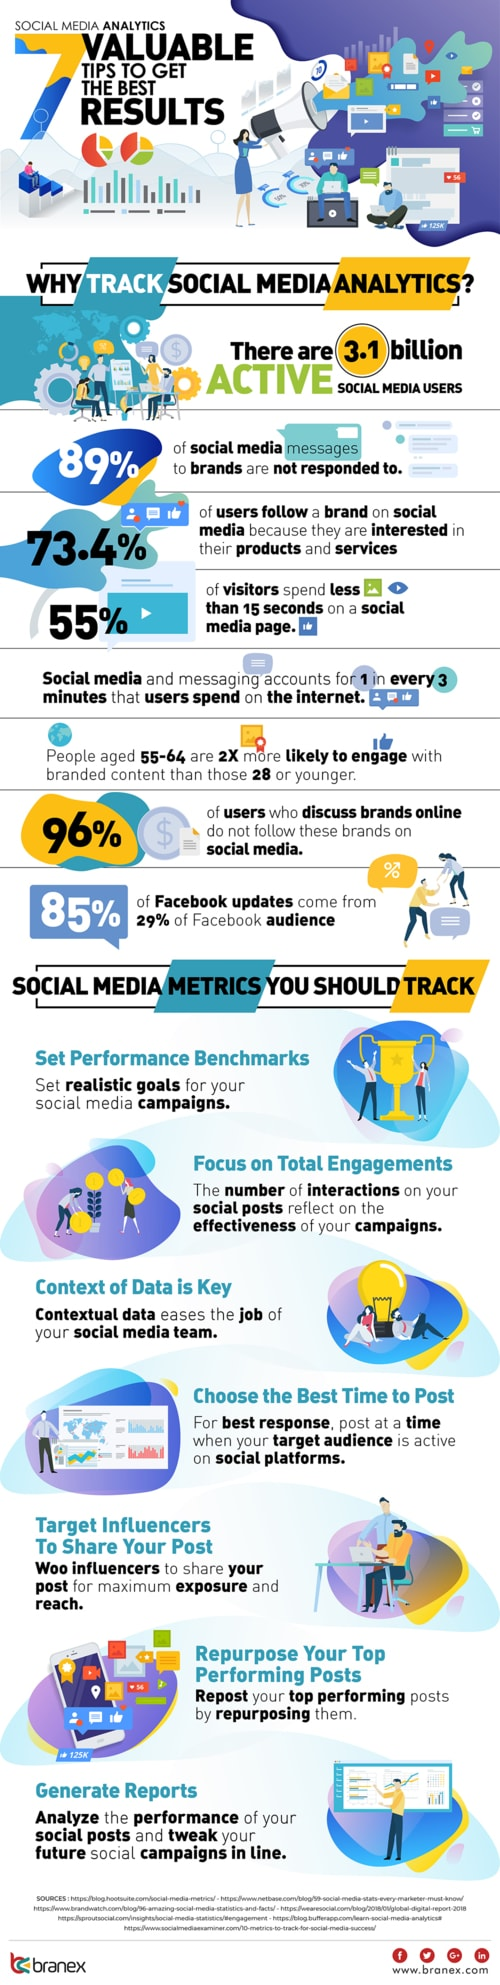 Social Media Analytics: 7 Valuable Tips to Get the Best Resu... via John Rex